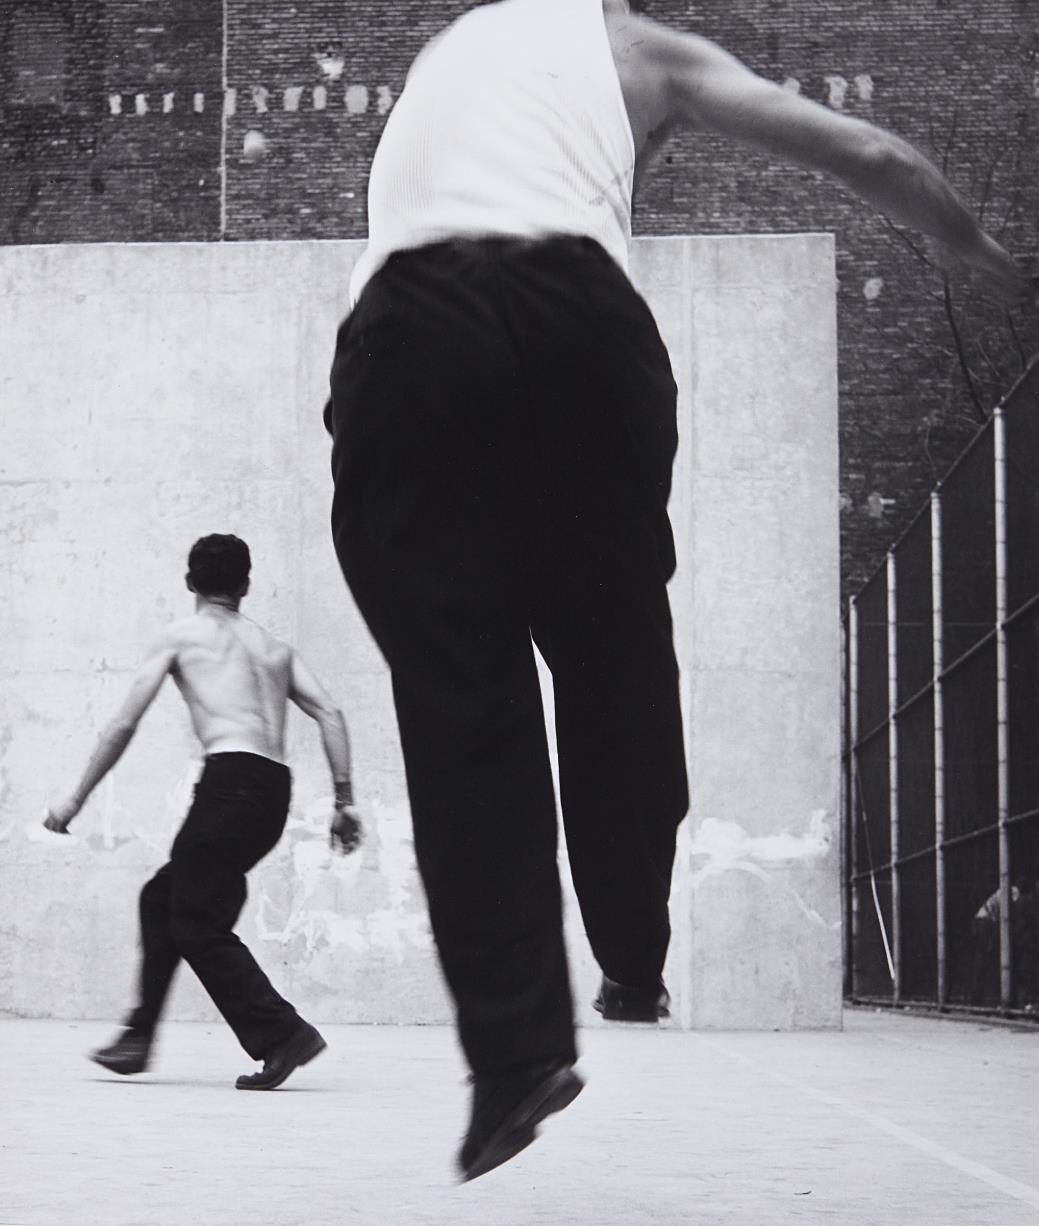 Leon Levinstein-Handball Players, Houston Street, New York-1970